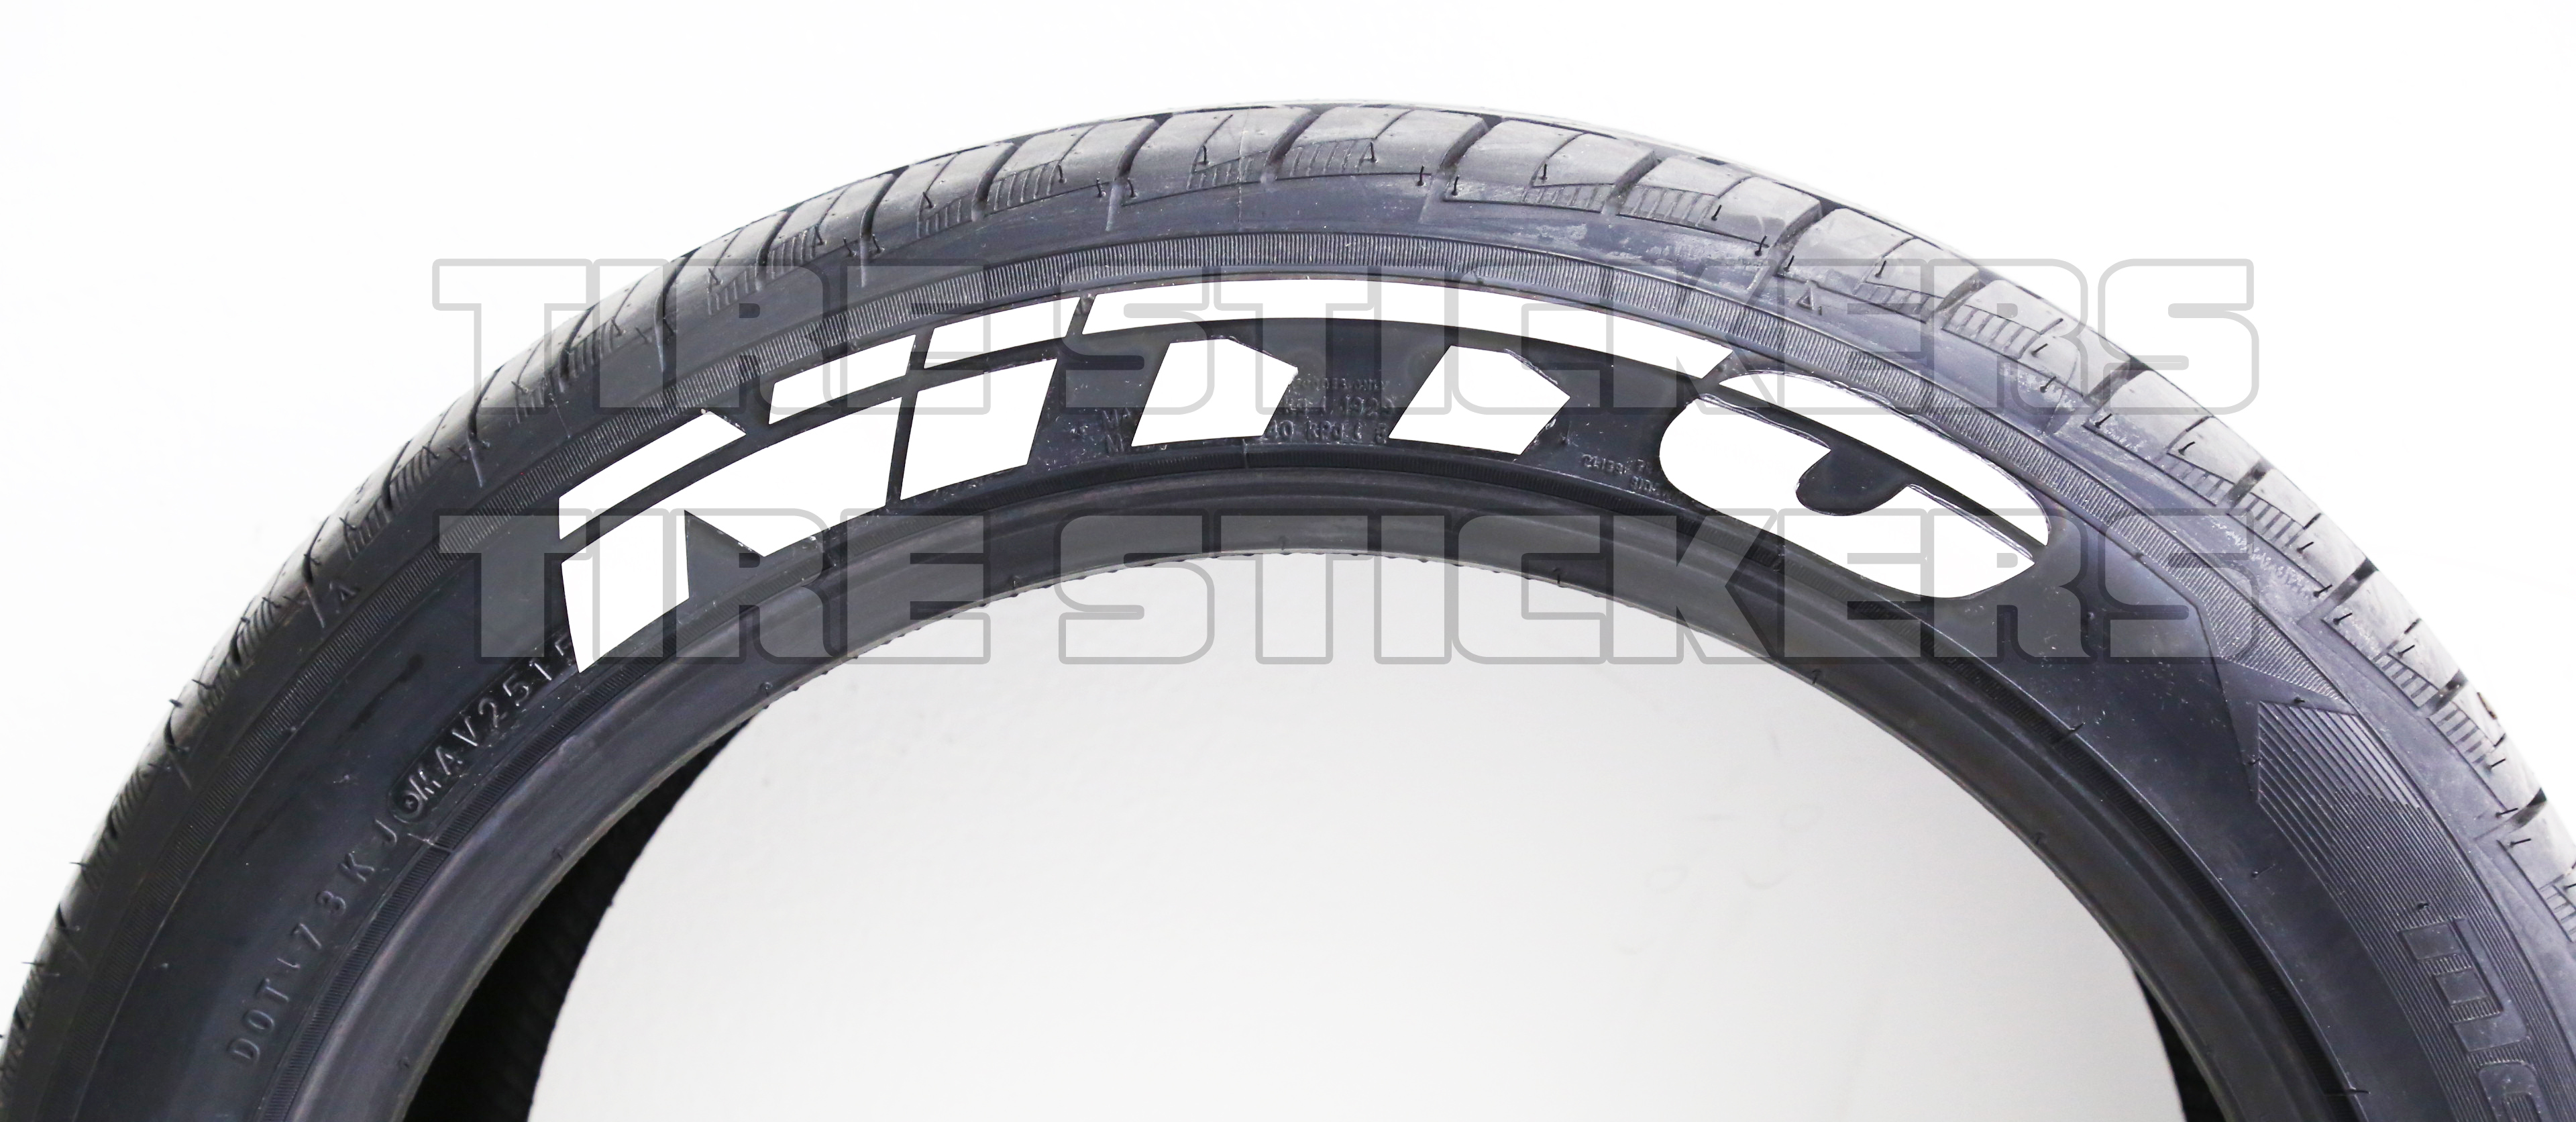 nitto tires with white lettering complaintsblog falken azenis tire lettering kit 951